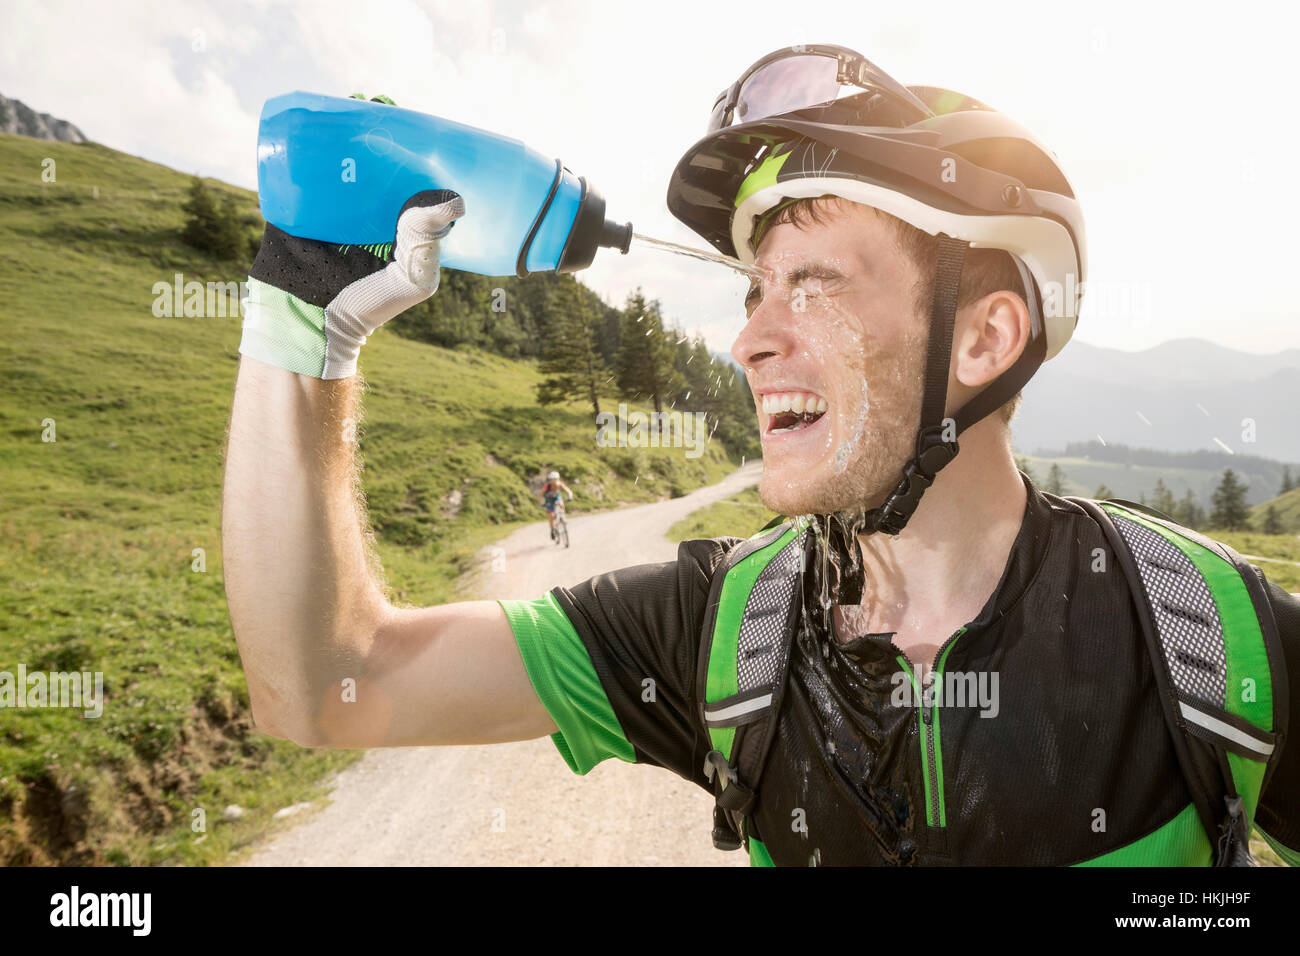 Mountain biker pouring water on his face, Kampenwand, Bavaria, Germany - Stock Image